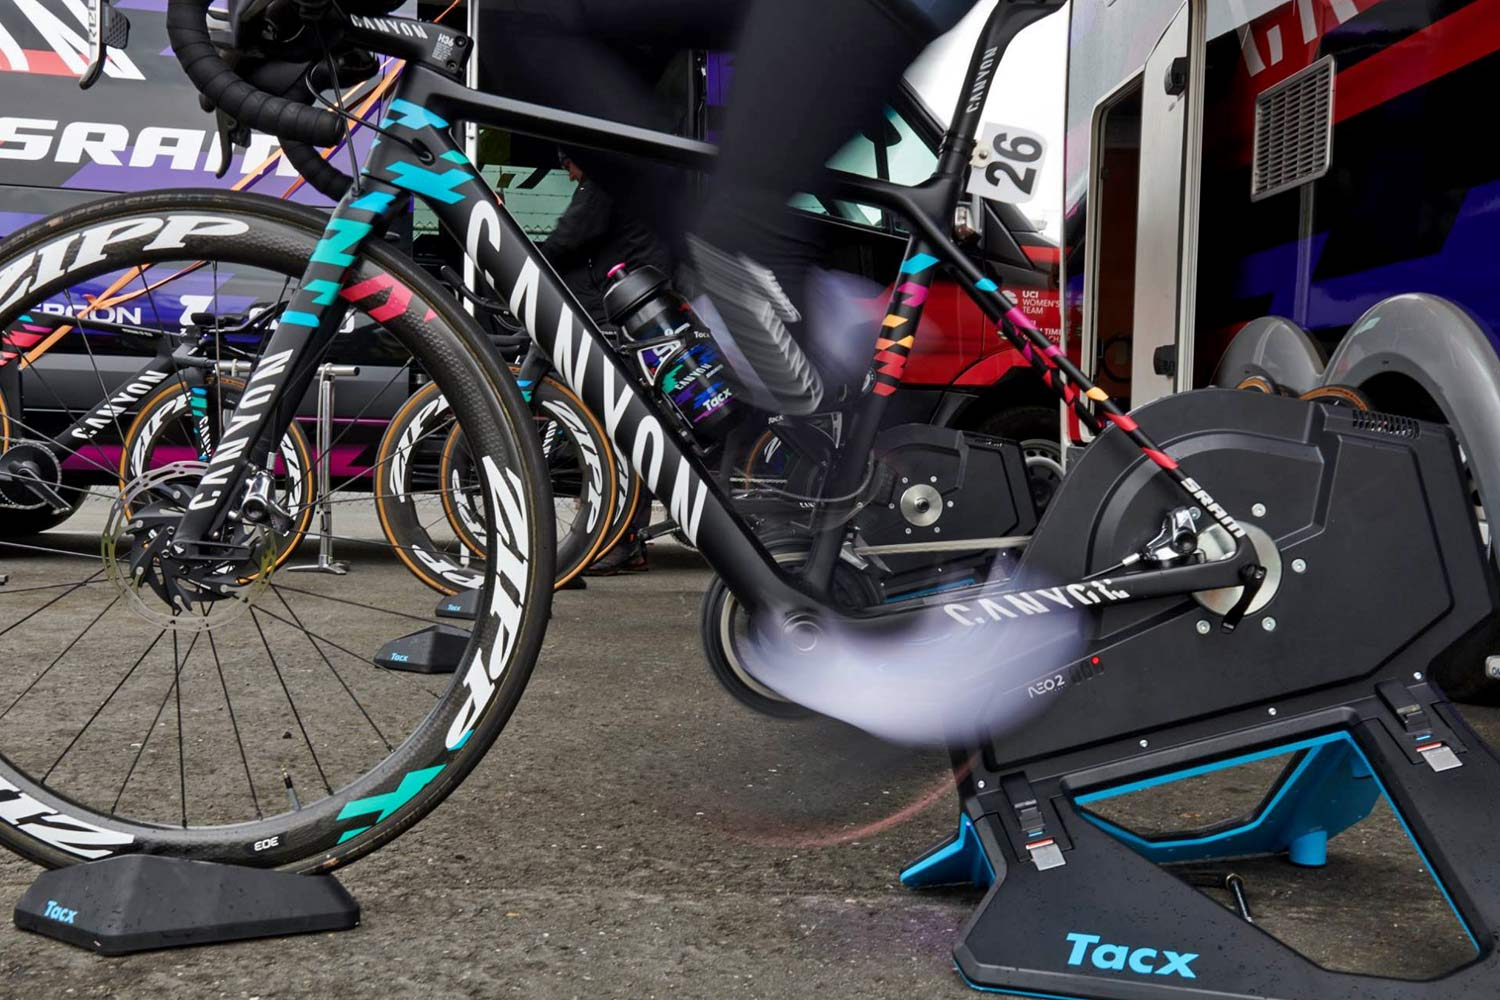 Canyon officially approves a number of bikes for turbo trainer usage, Canyon//SRAM pre-race warmup